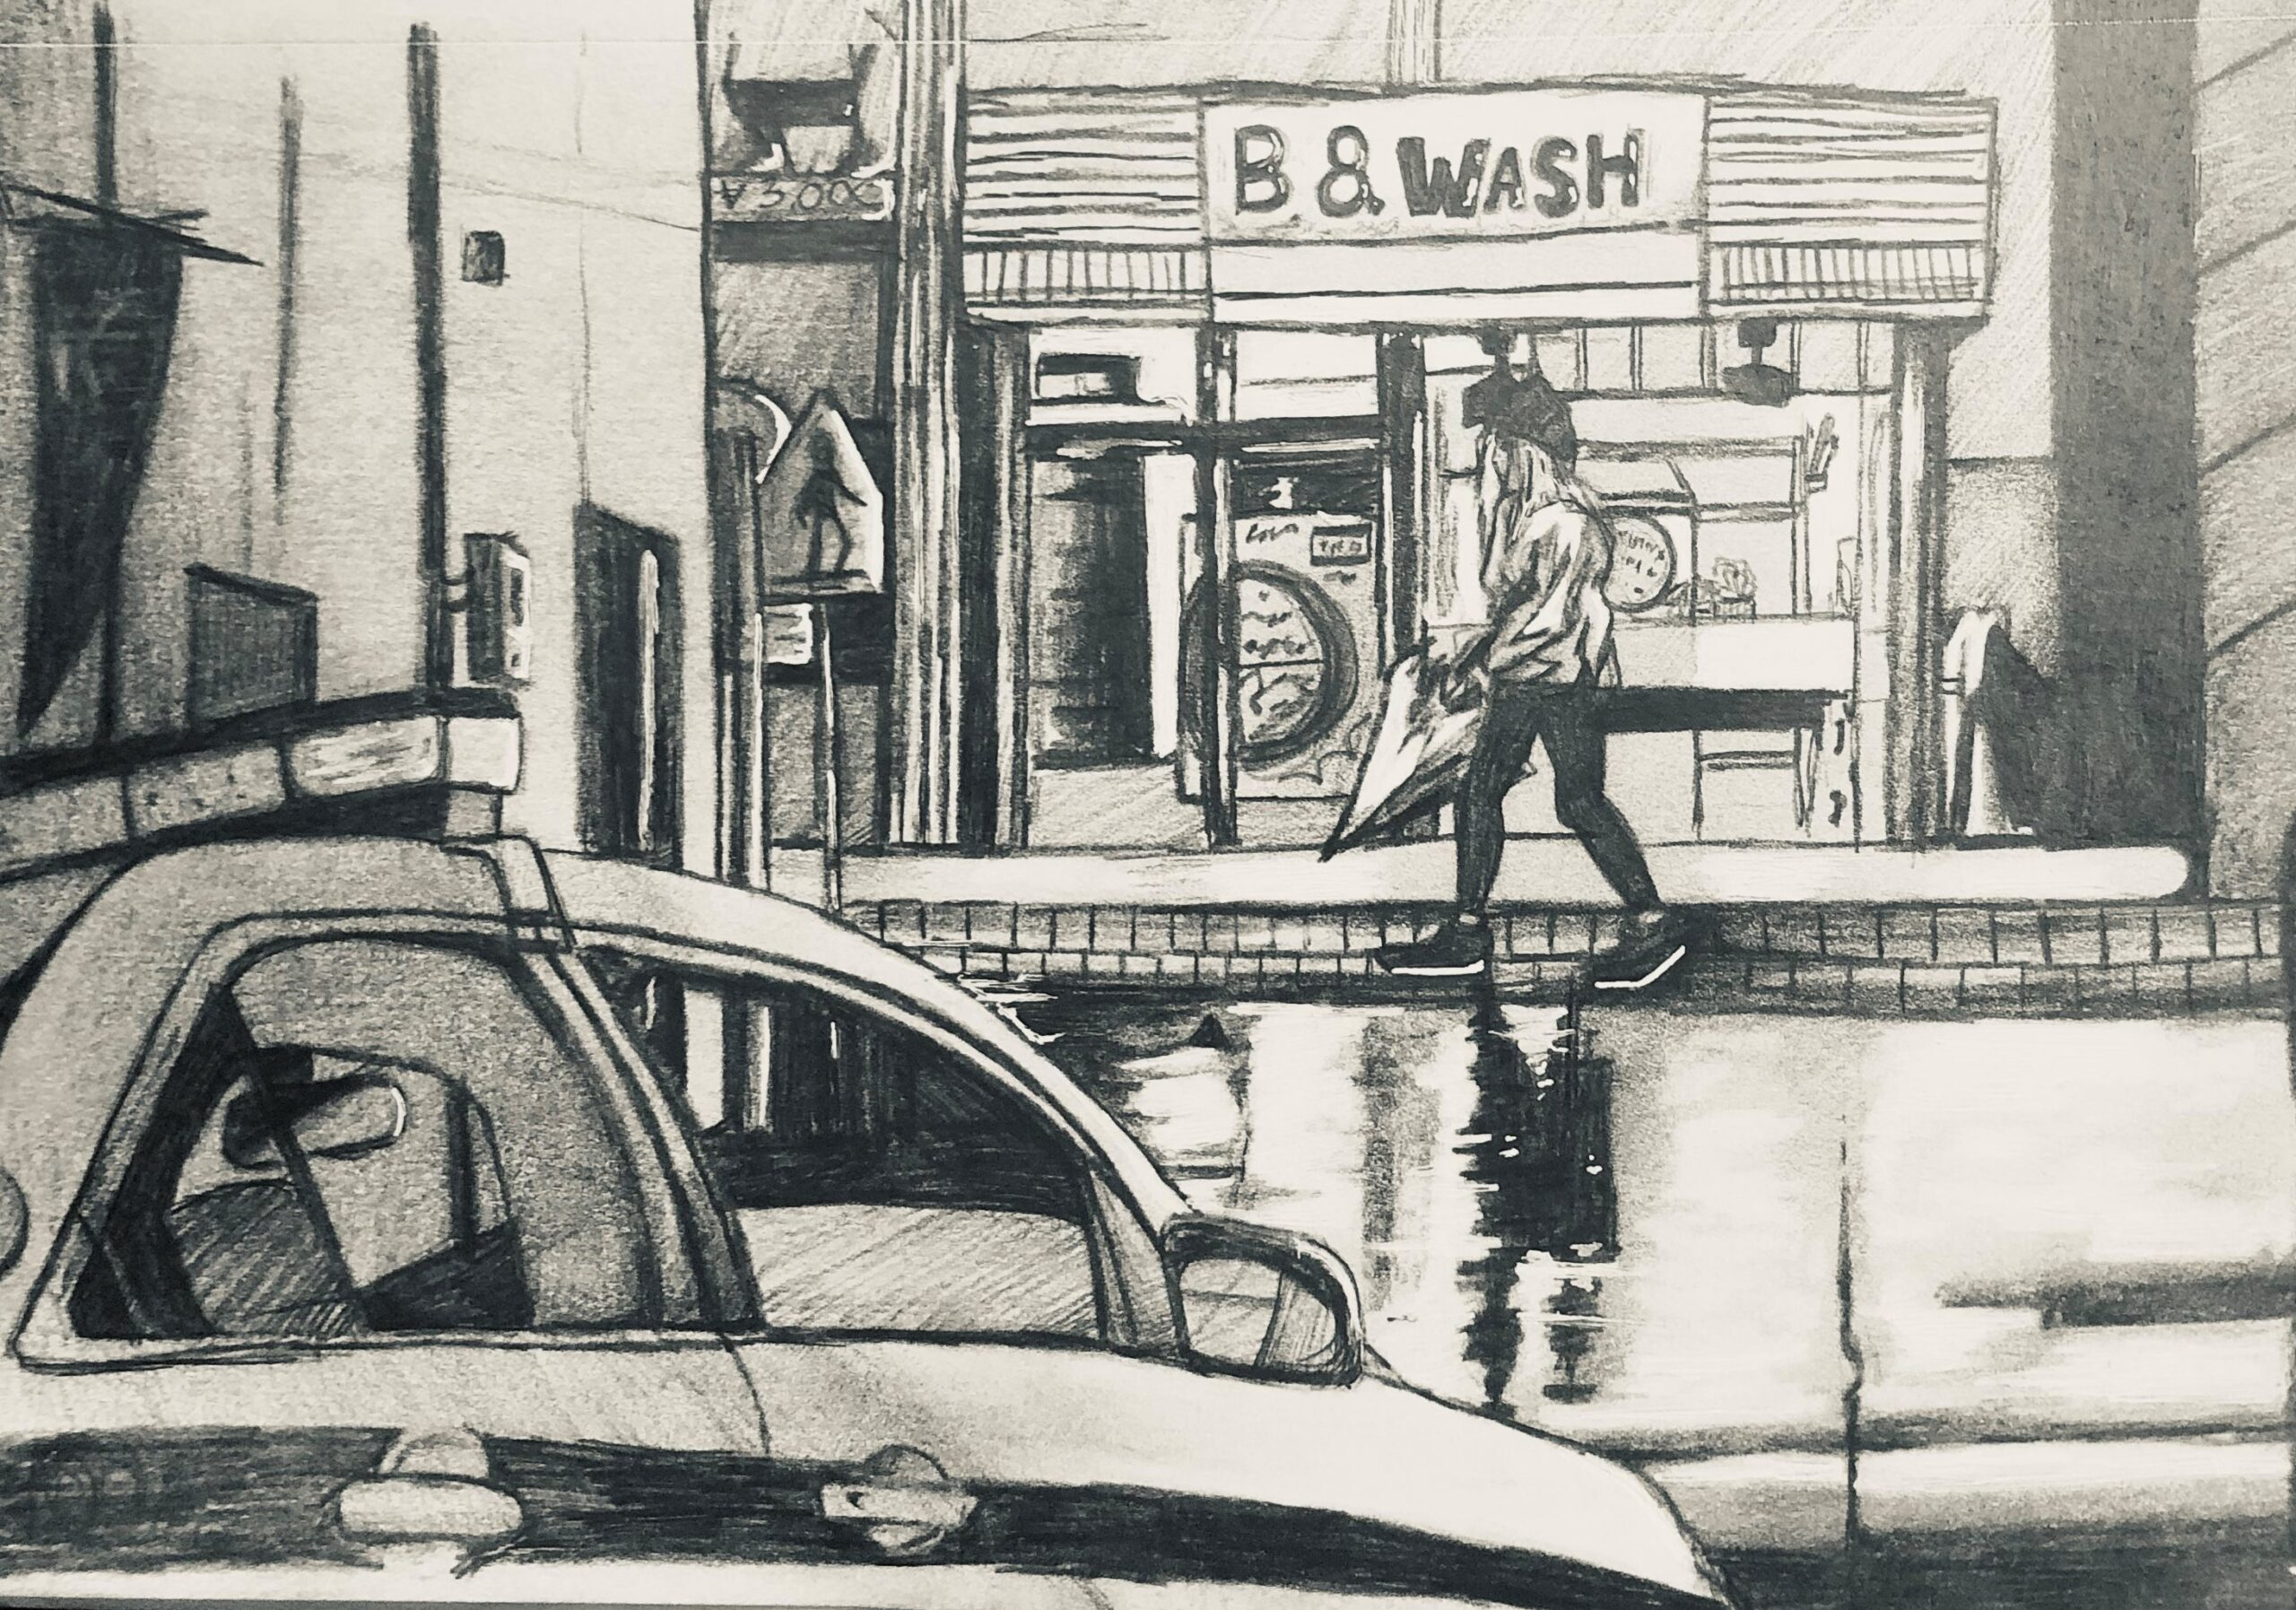 sketch street view charcoal